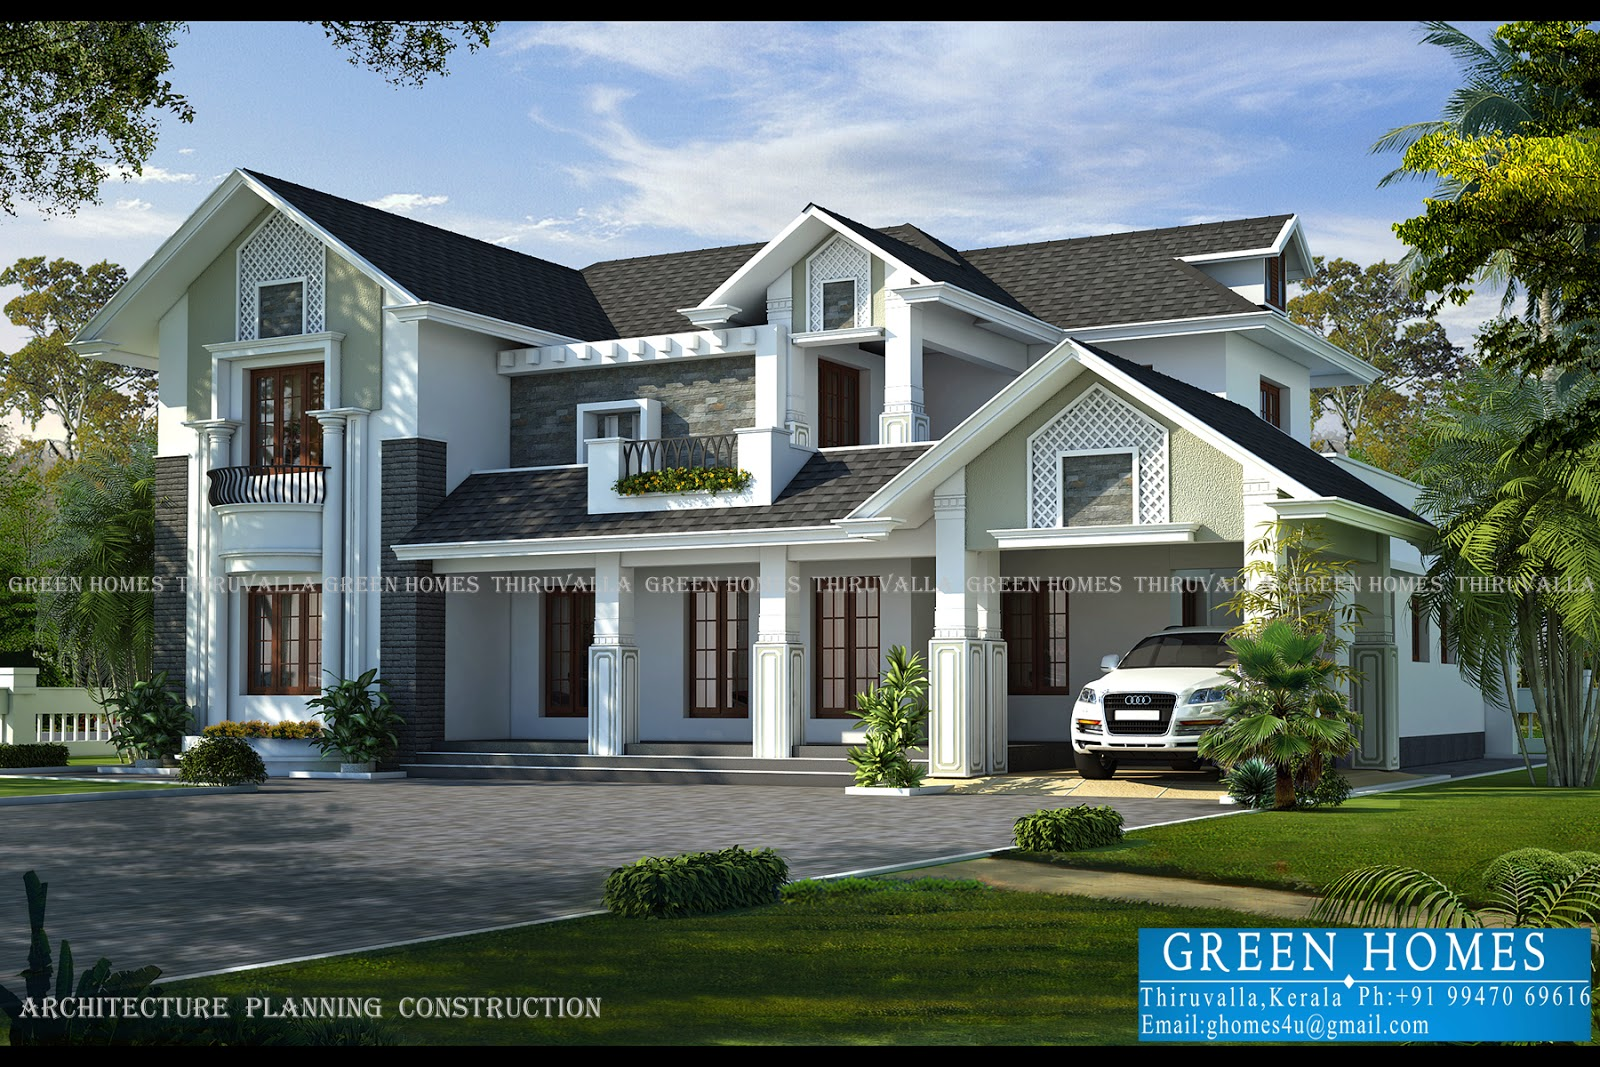 Green homes february 2014 for Green home builders